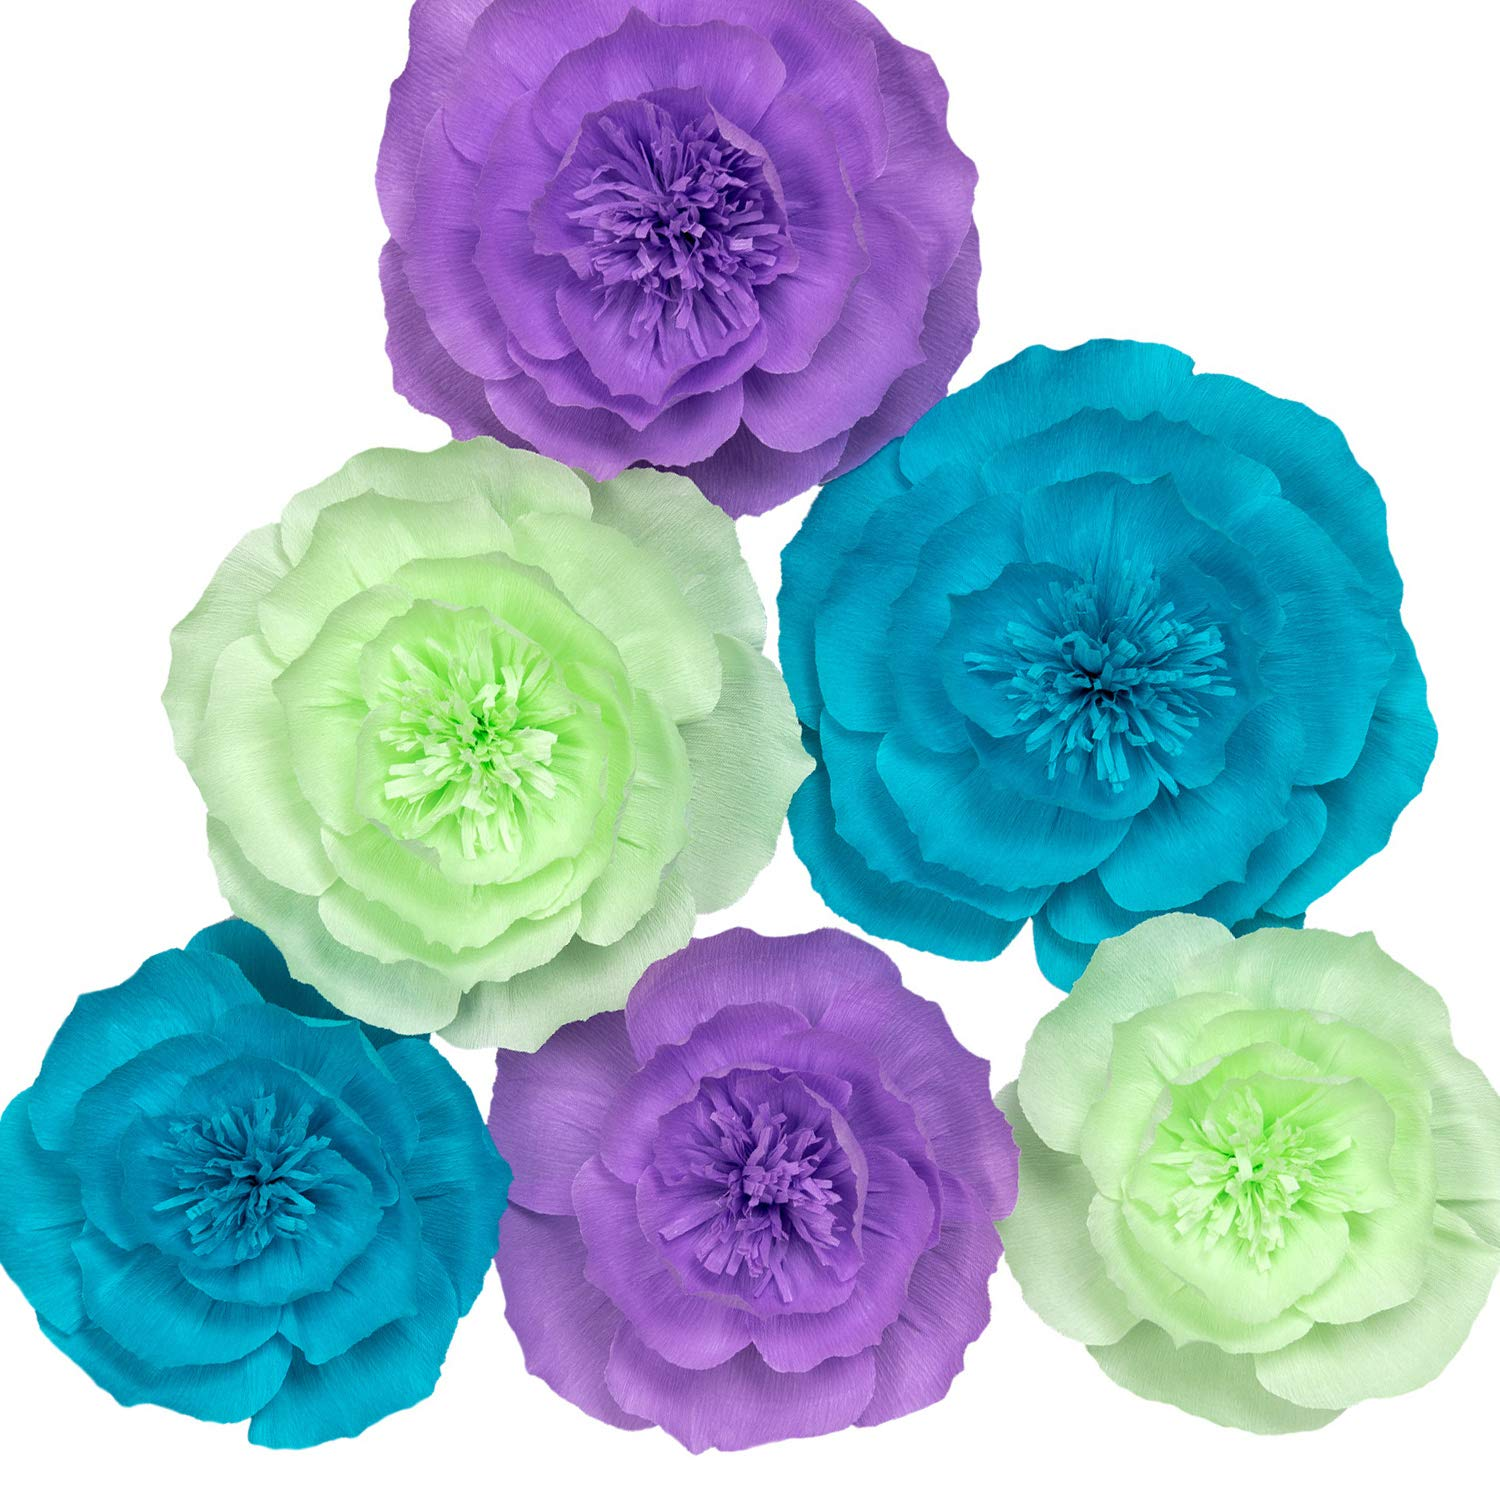 Paper Flower Decorations, Large Crepe Paper Flowers, Wedding Flower Backdrop, Giant Paper Flowers (Purple, Teal Blue, Light Green, Set of 6) for Wedding, Bridal Shower, Baby Shower, Wall Decorations